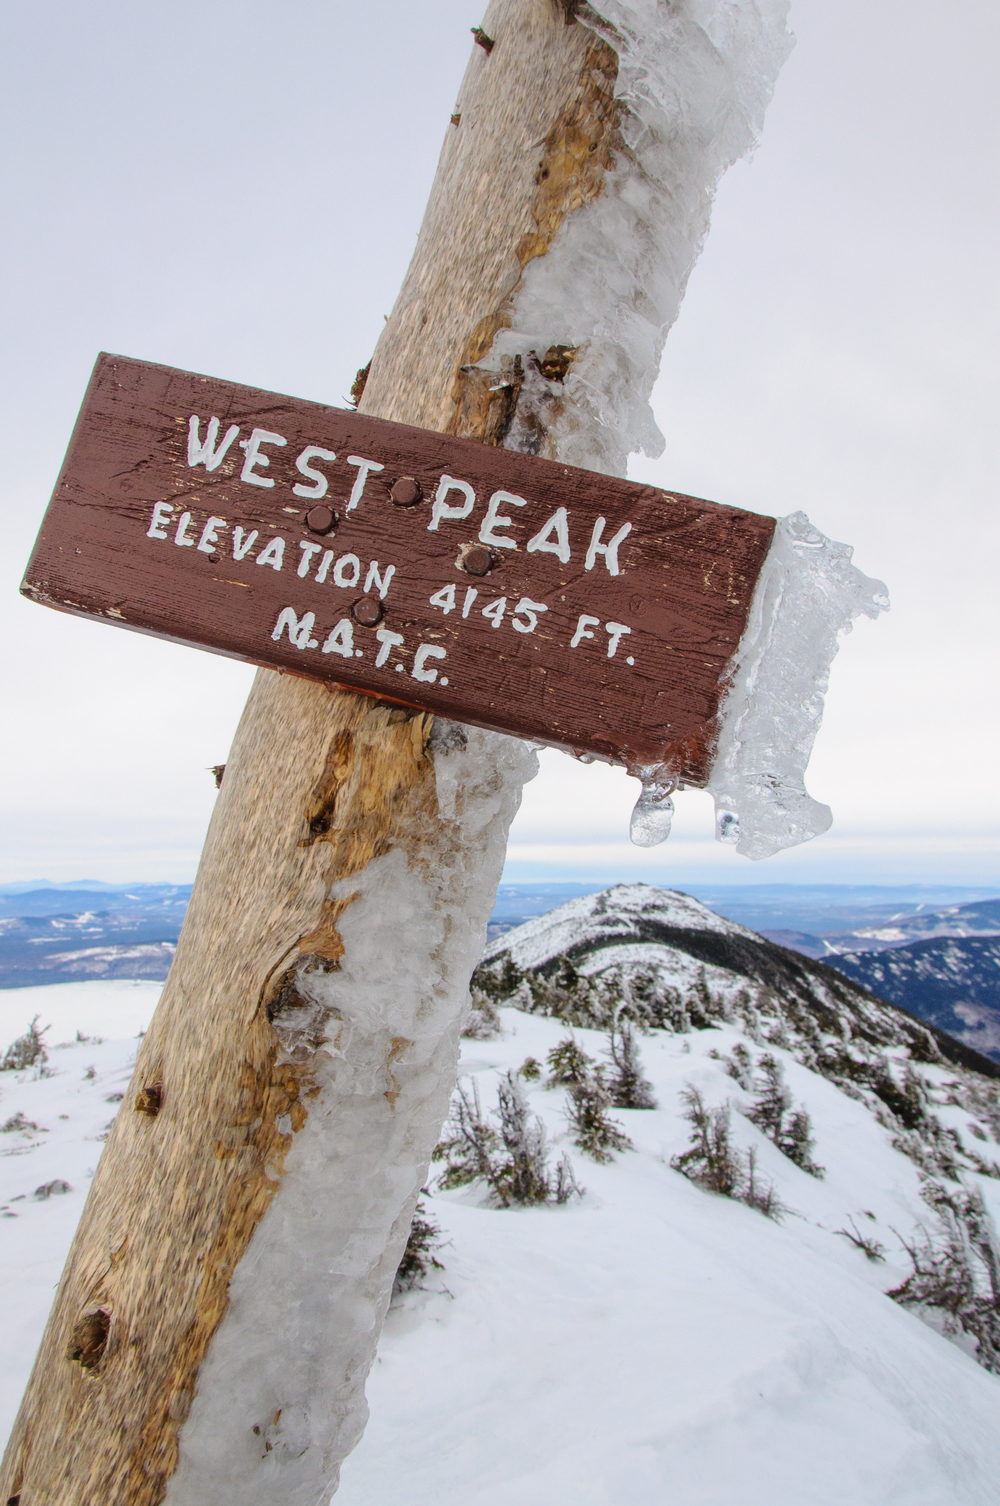 West Peak, Bigelow Mountains, Maine, USA January 2015